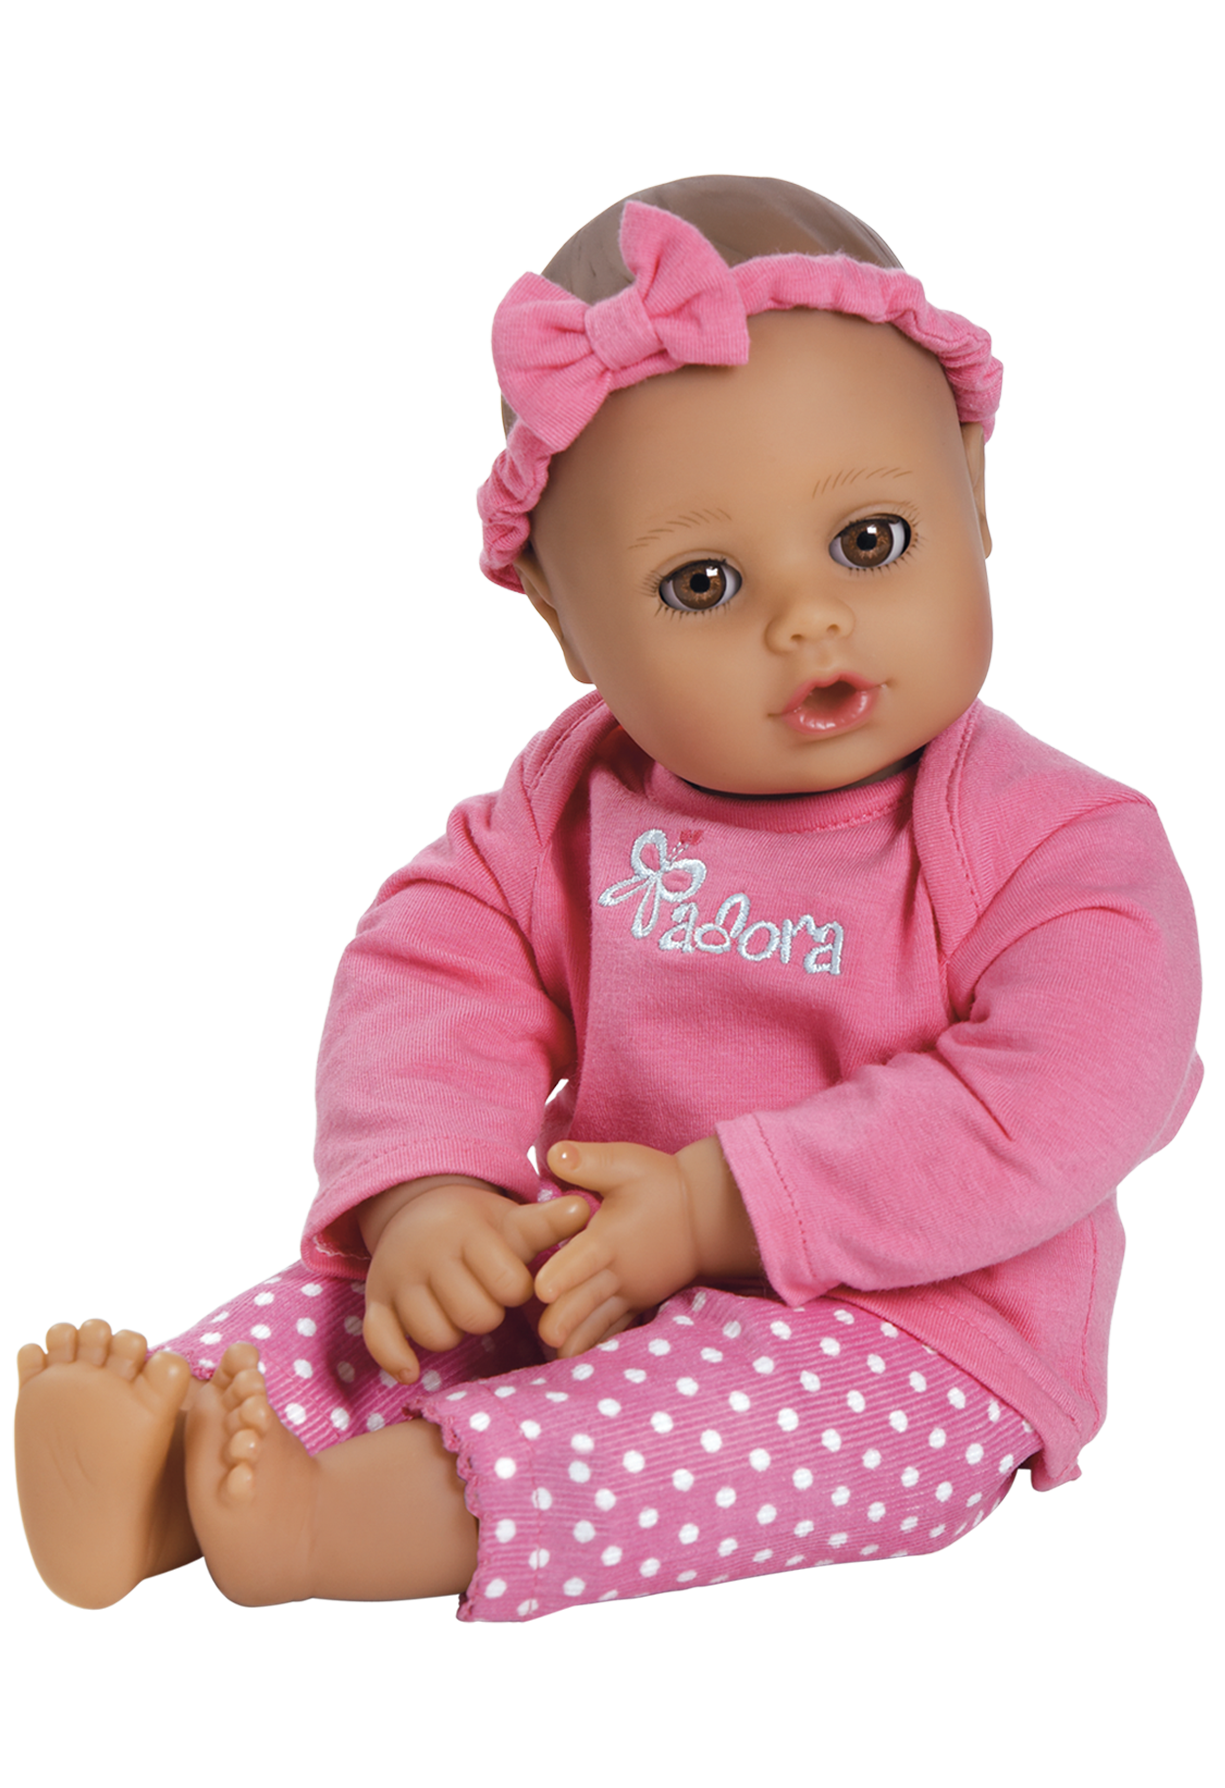 Adora 13 Inch Playtime Baby Doll For Toddlers Pink Soft Baby Dolls Baby Dolls For Toddlers Baby Dolls